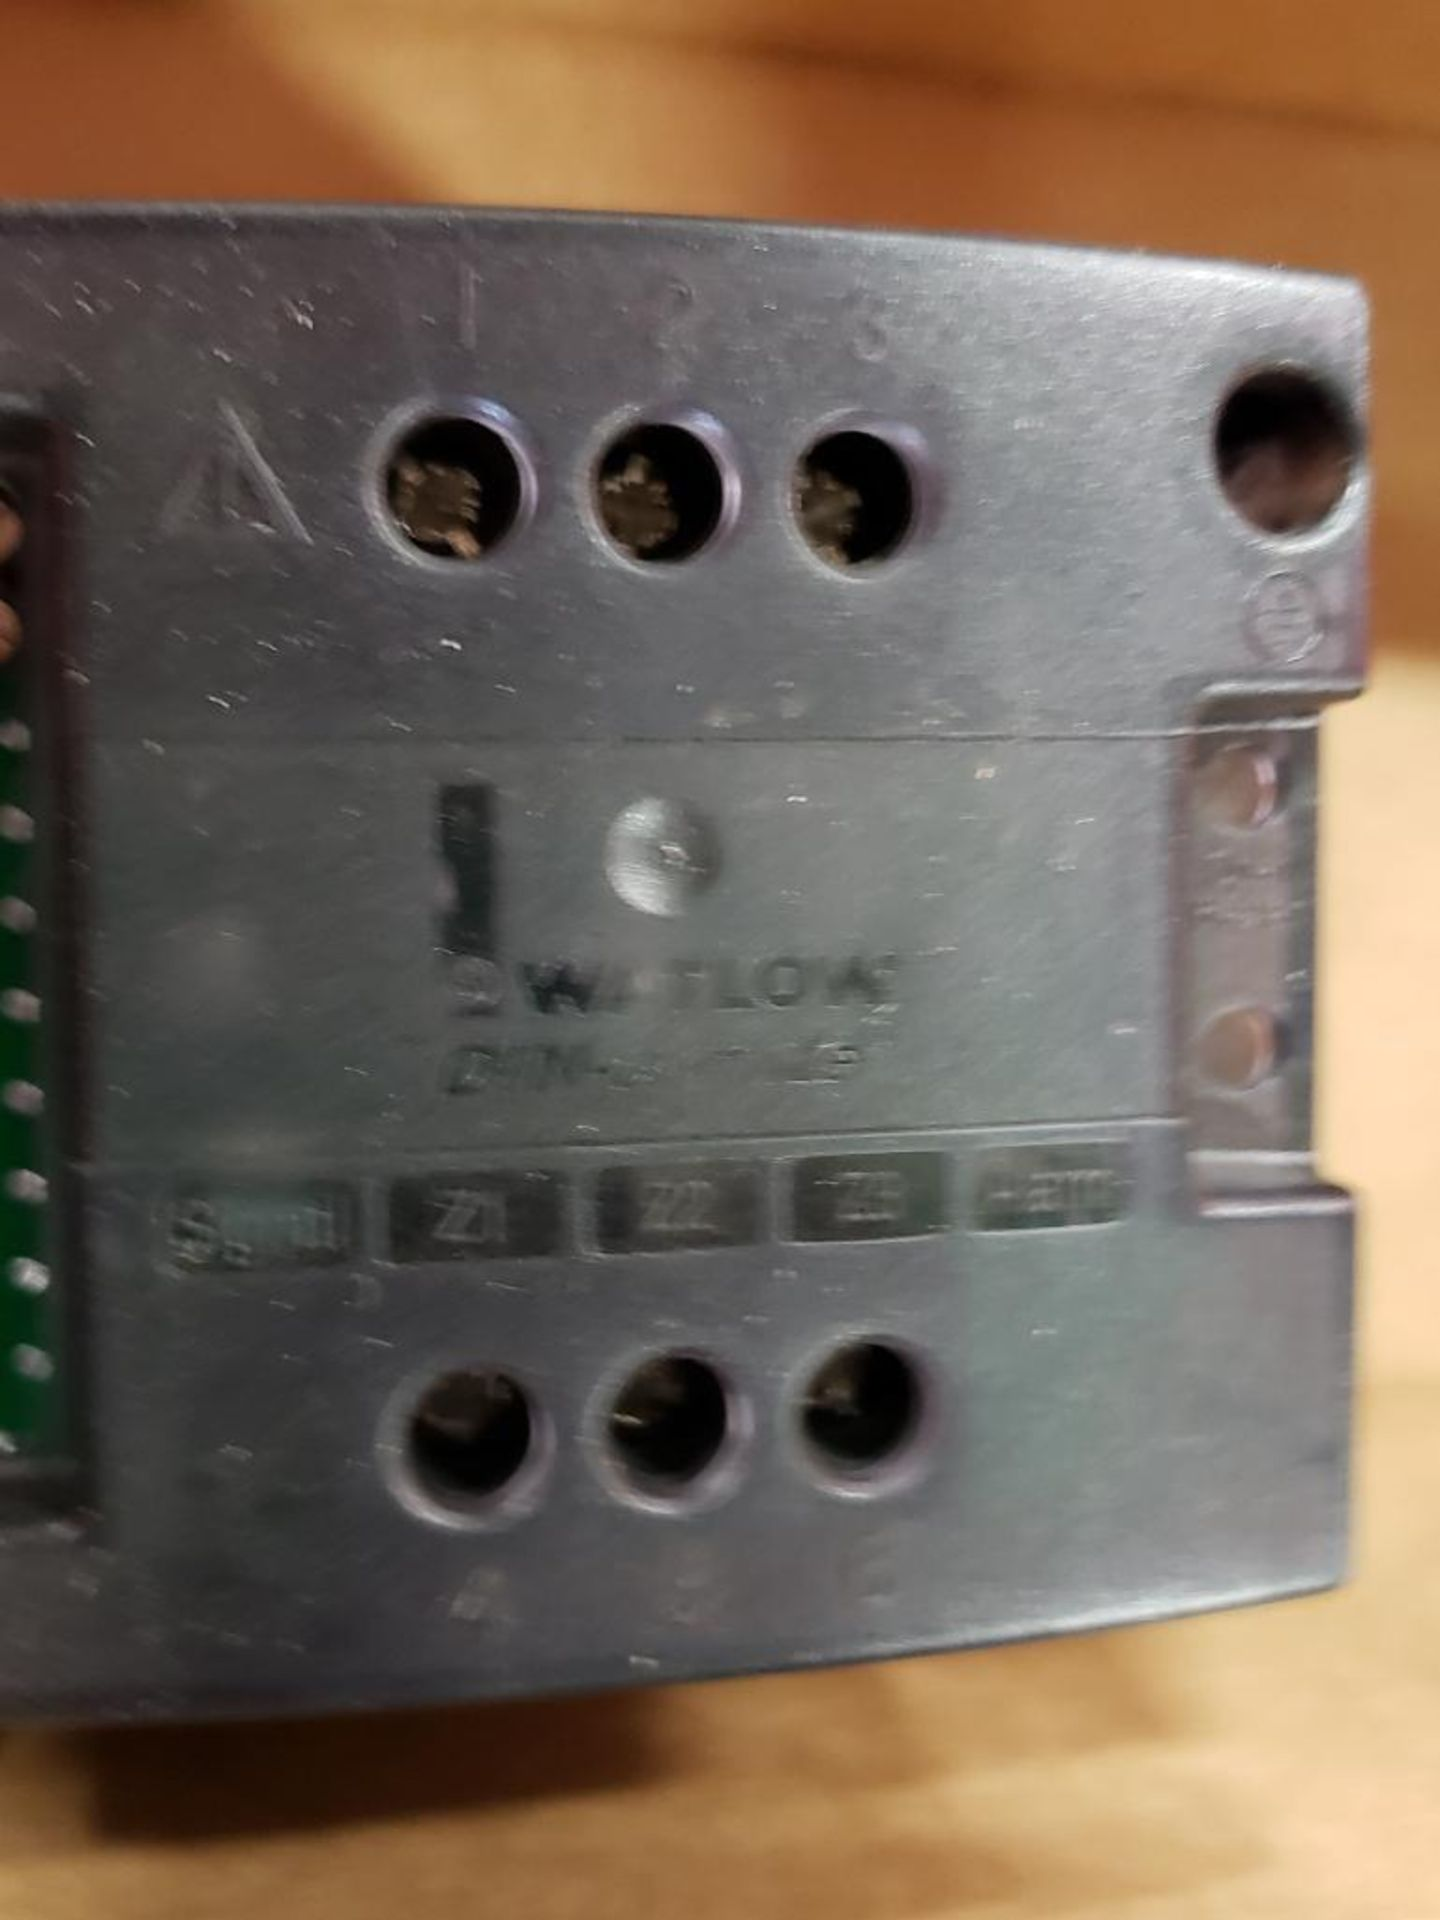 Qty 2 - Watlow DIN-A-Mite DB10-24C0-0000 power controller. - Image 3 of 5